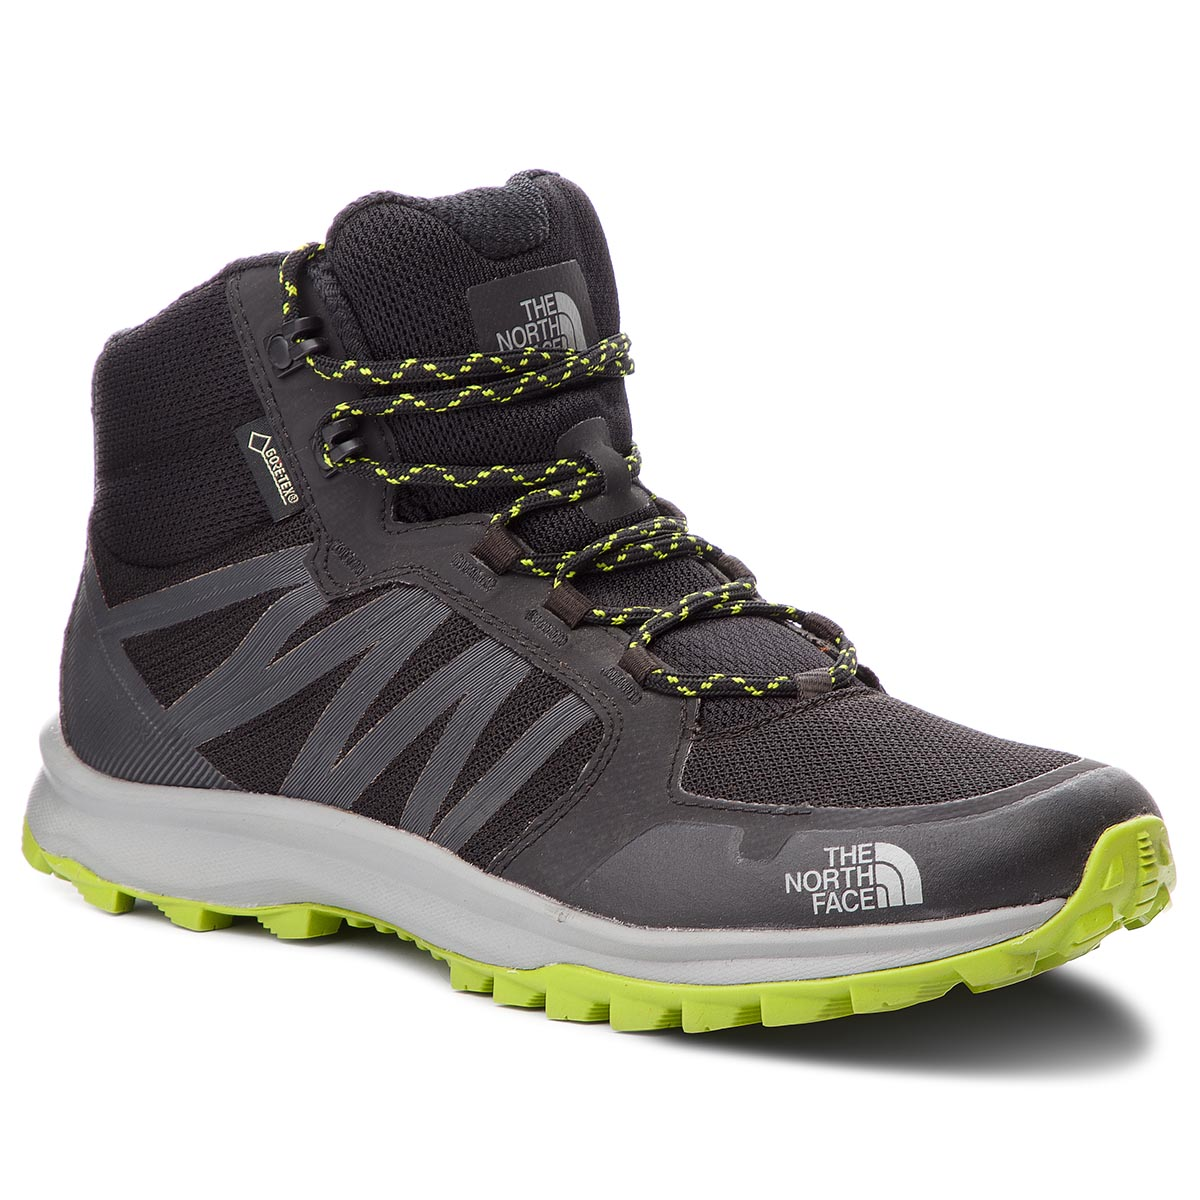 Trekkings THE NORTH FACE - Litewave Fastpack Mid Gtx (Graphic) GORE-TEX NF0A3FX2KW2 Thf Black/Lime Green